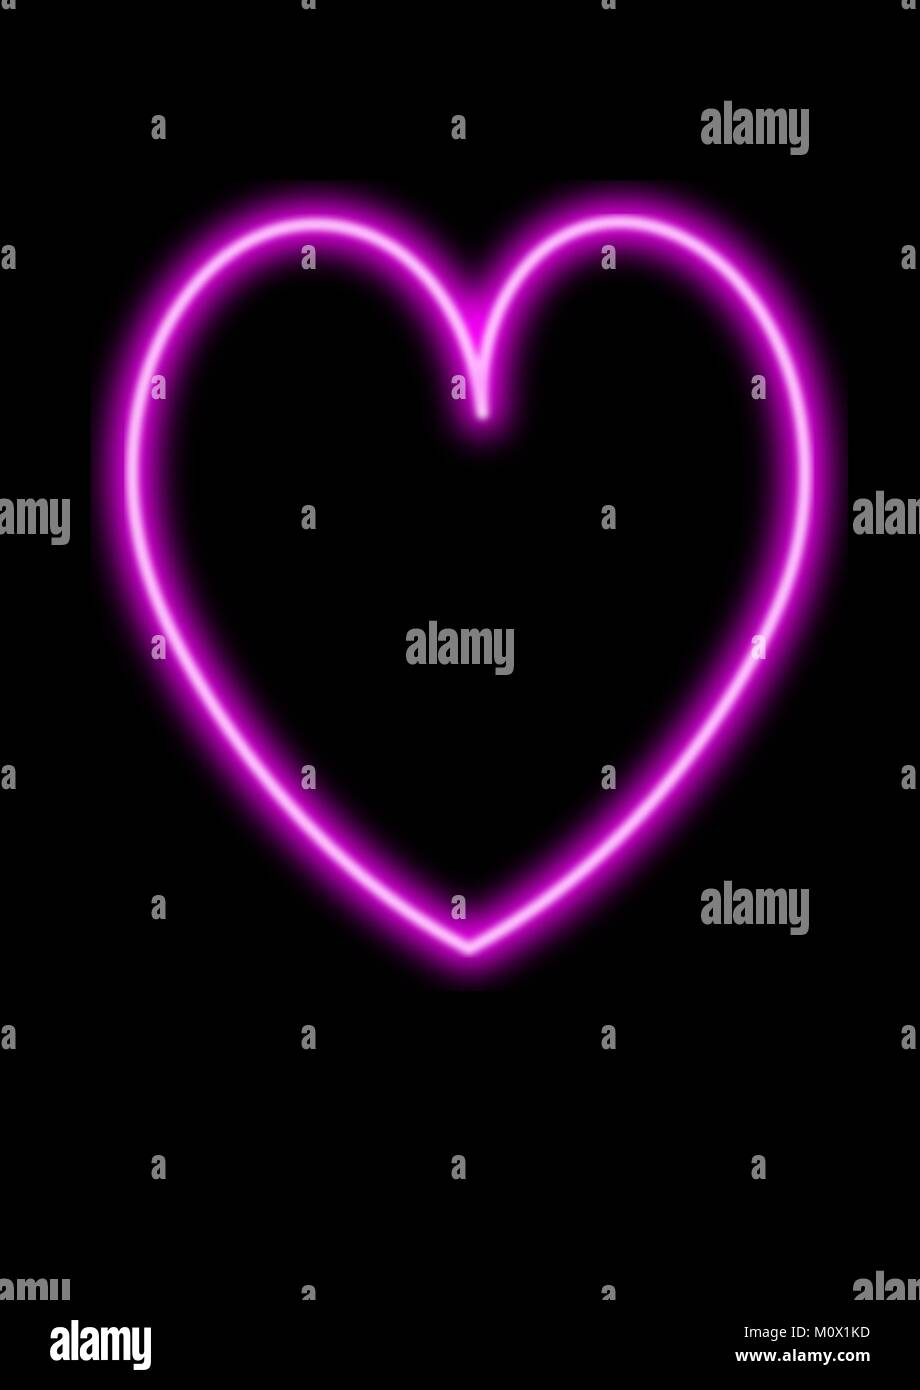 Neon Bright Pink Heart On Plain Black Background